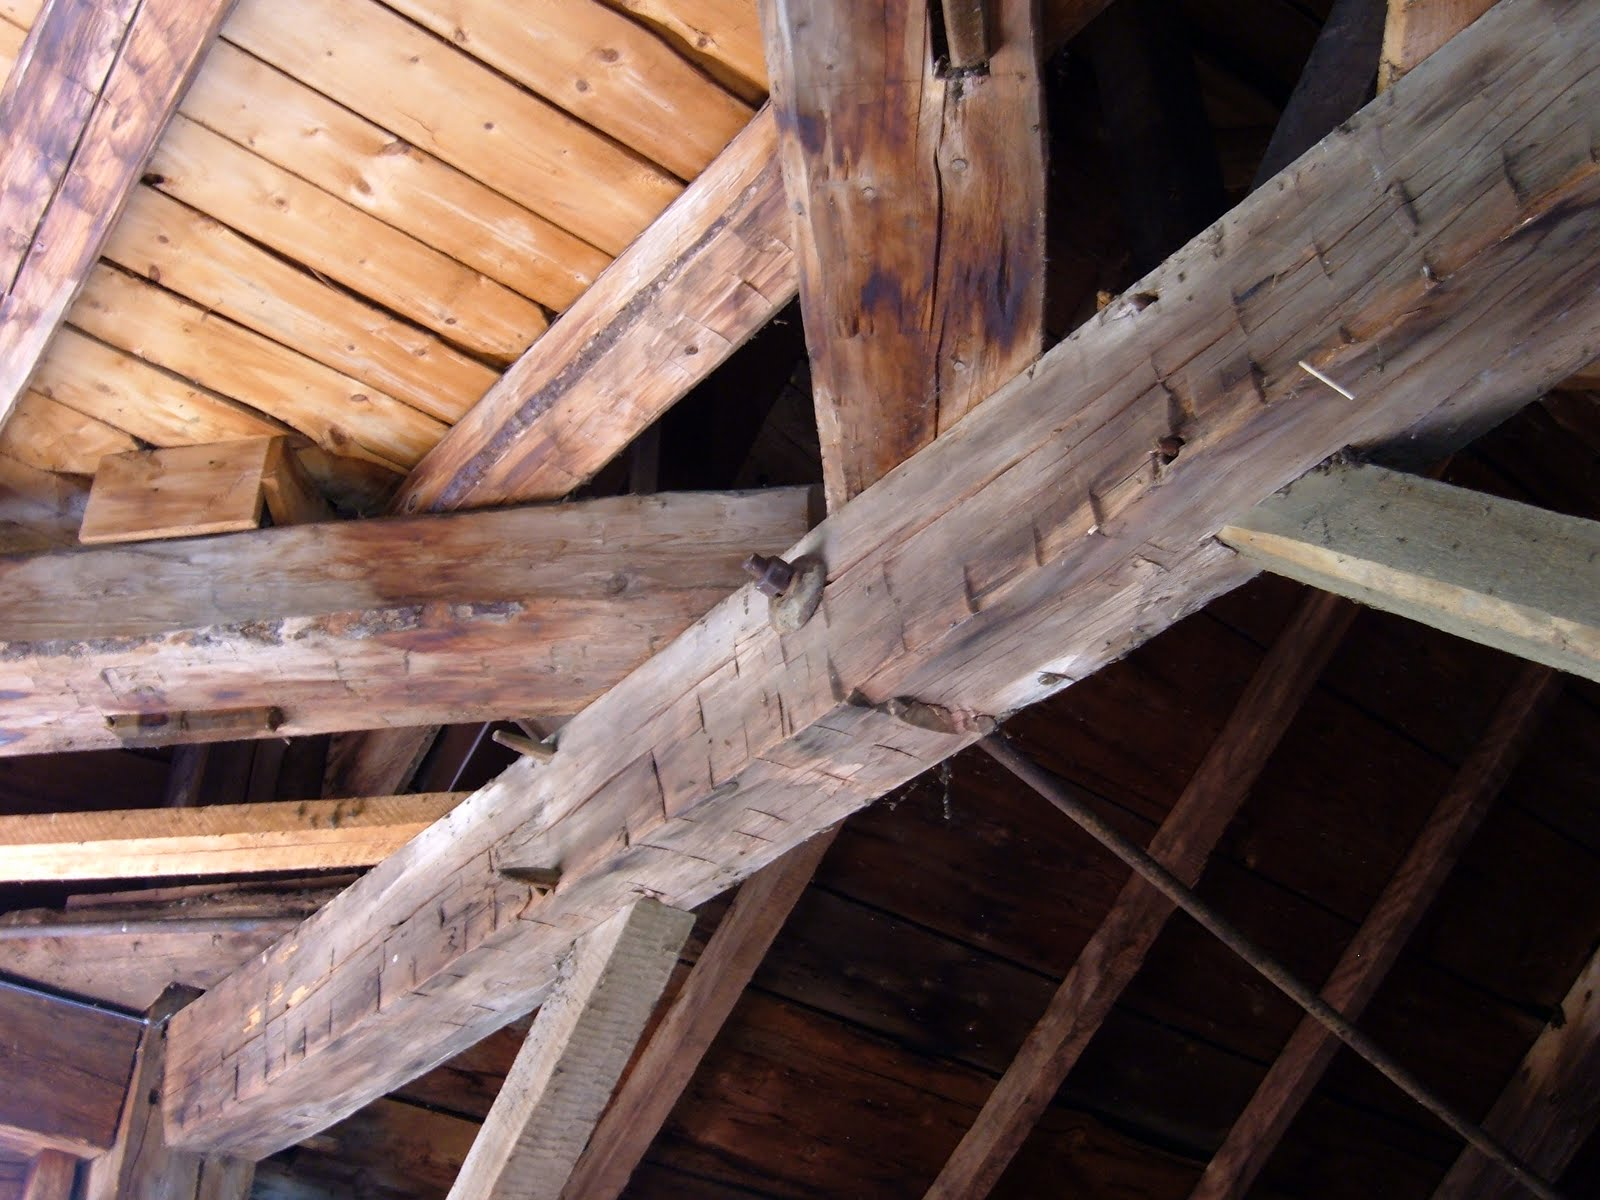 The girt with the rod attached to it has rolled on its tennons due to the weight of the sleepers that support the octagonal octagonal posts of the lantern and spire above.